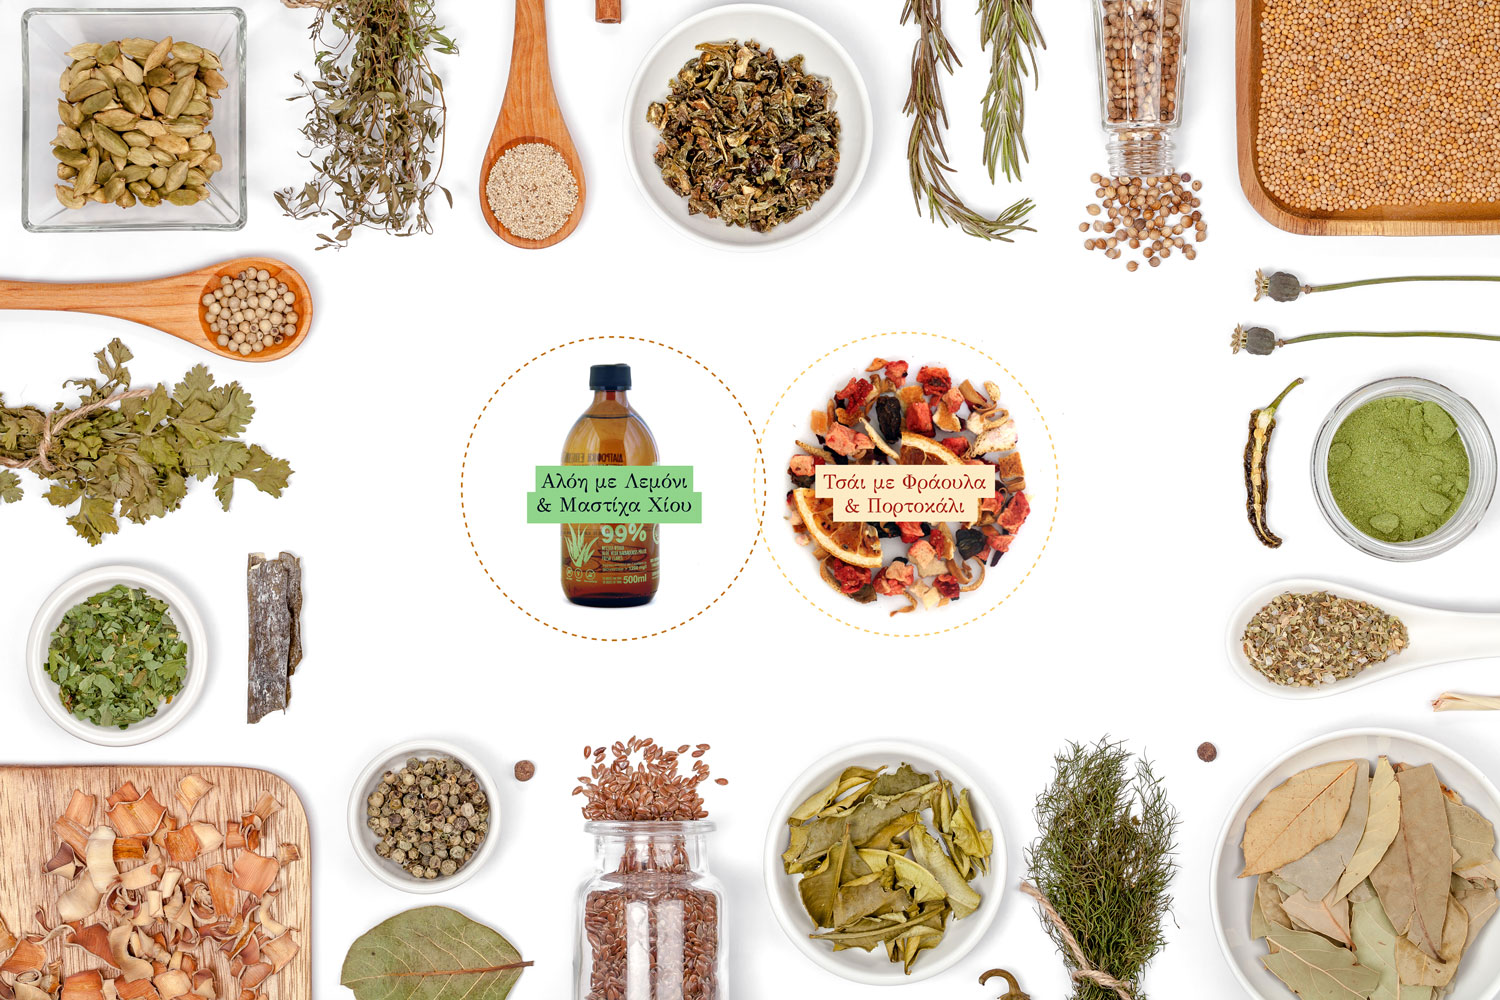 Herbs & Spices eShop   Branding・Web Design・Project Management    To Bahari  is a greek family business selling traditional and biological products. My brief was to design a website consistent with their brick and mortar presence.